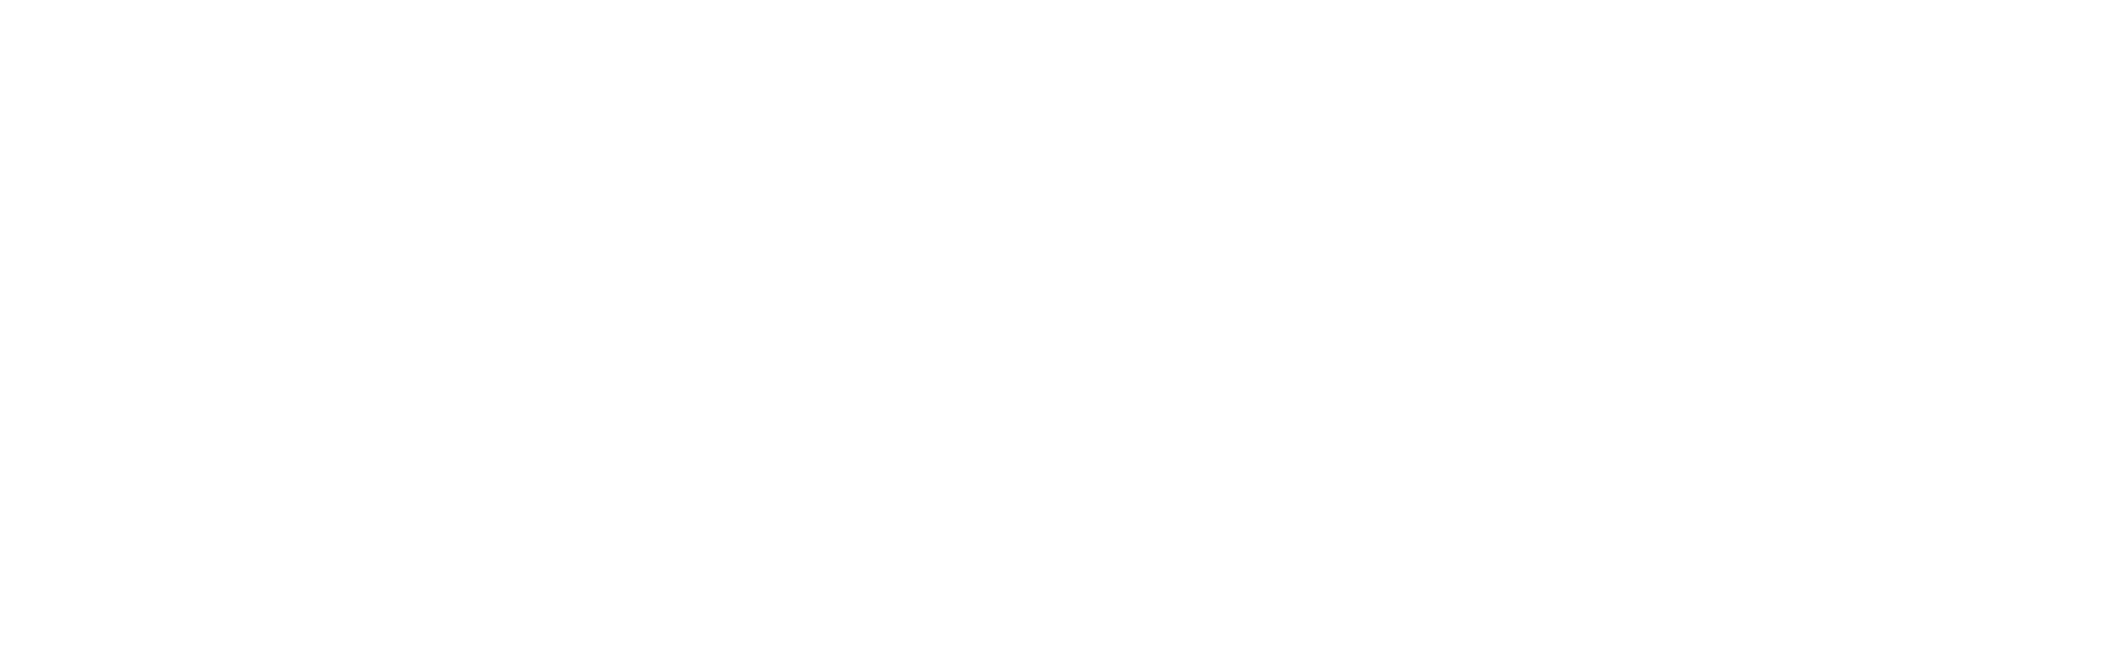 Trufusion white logo without classes